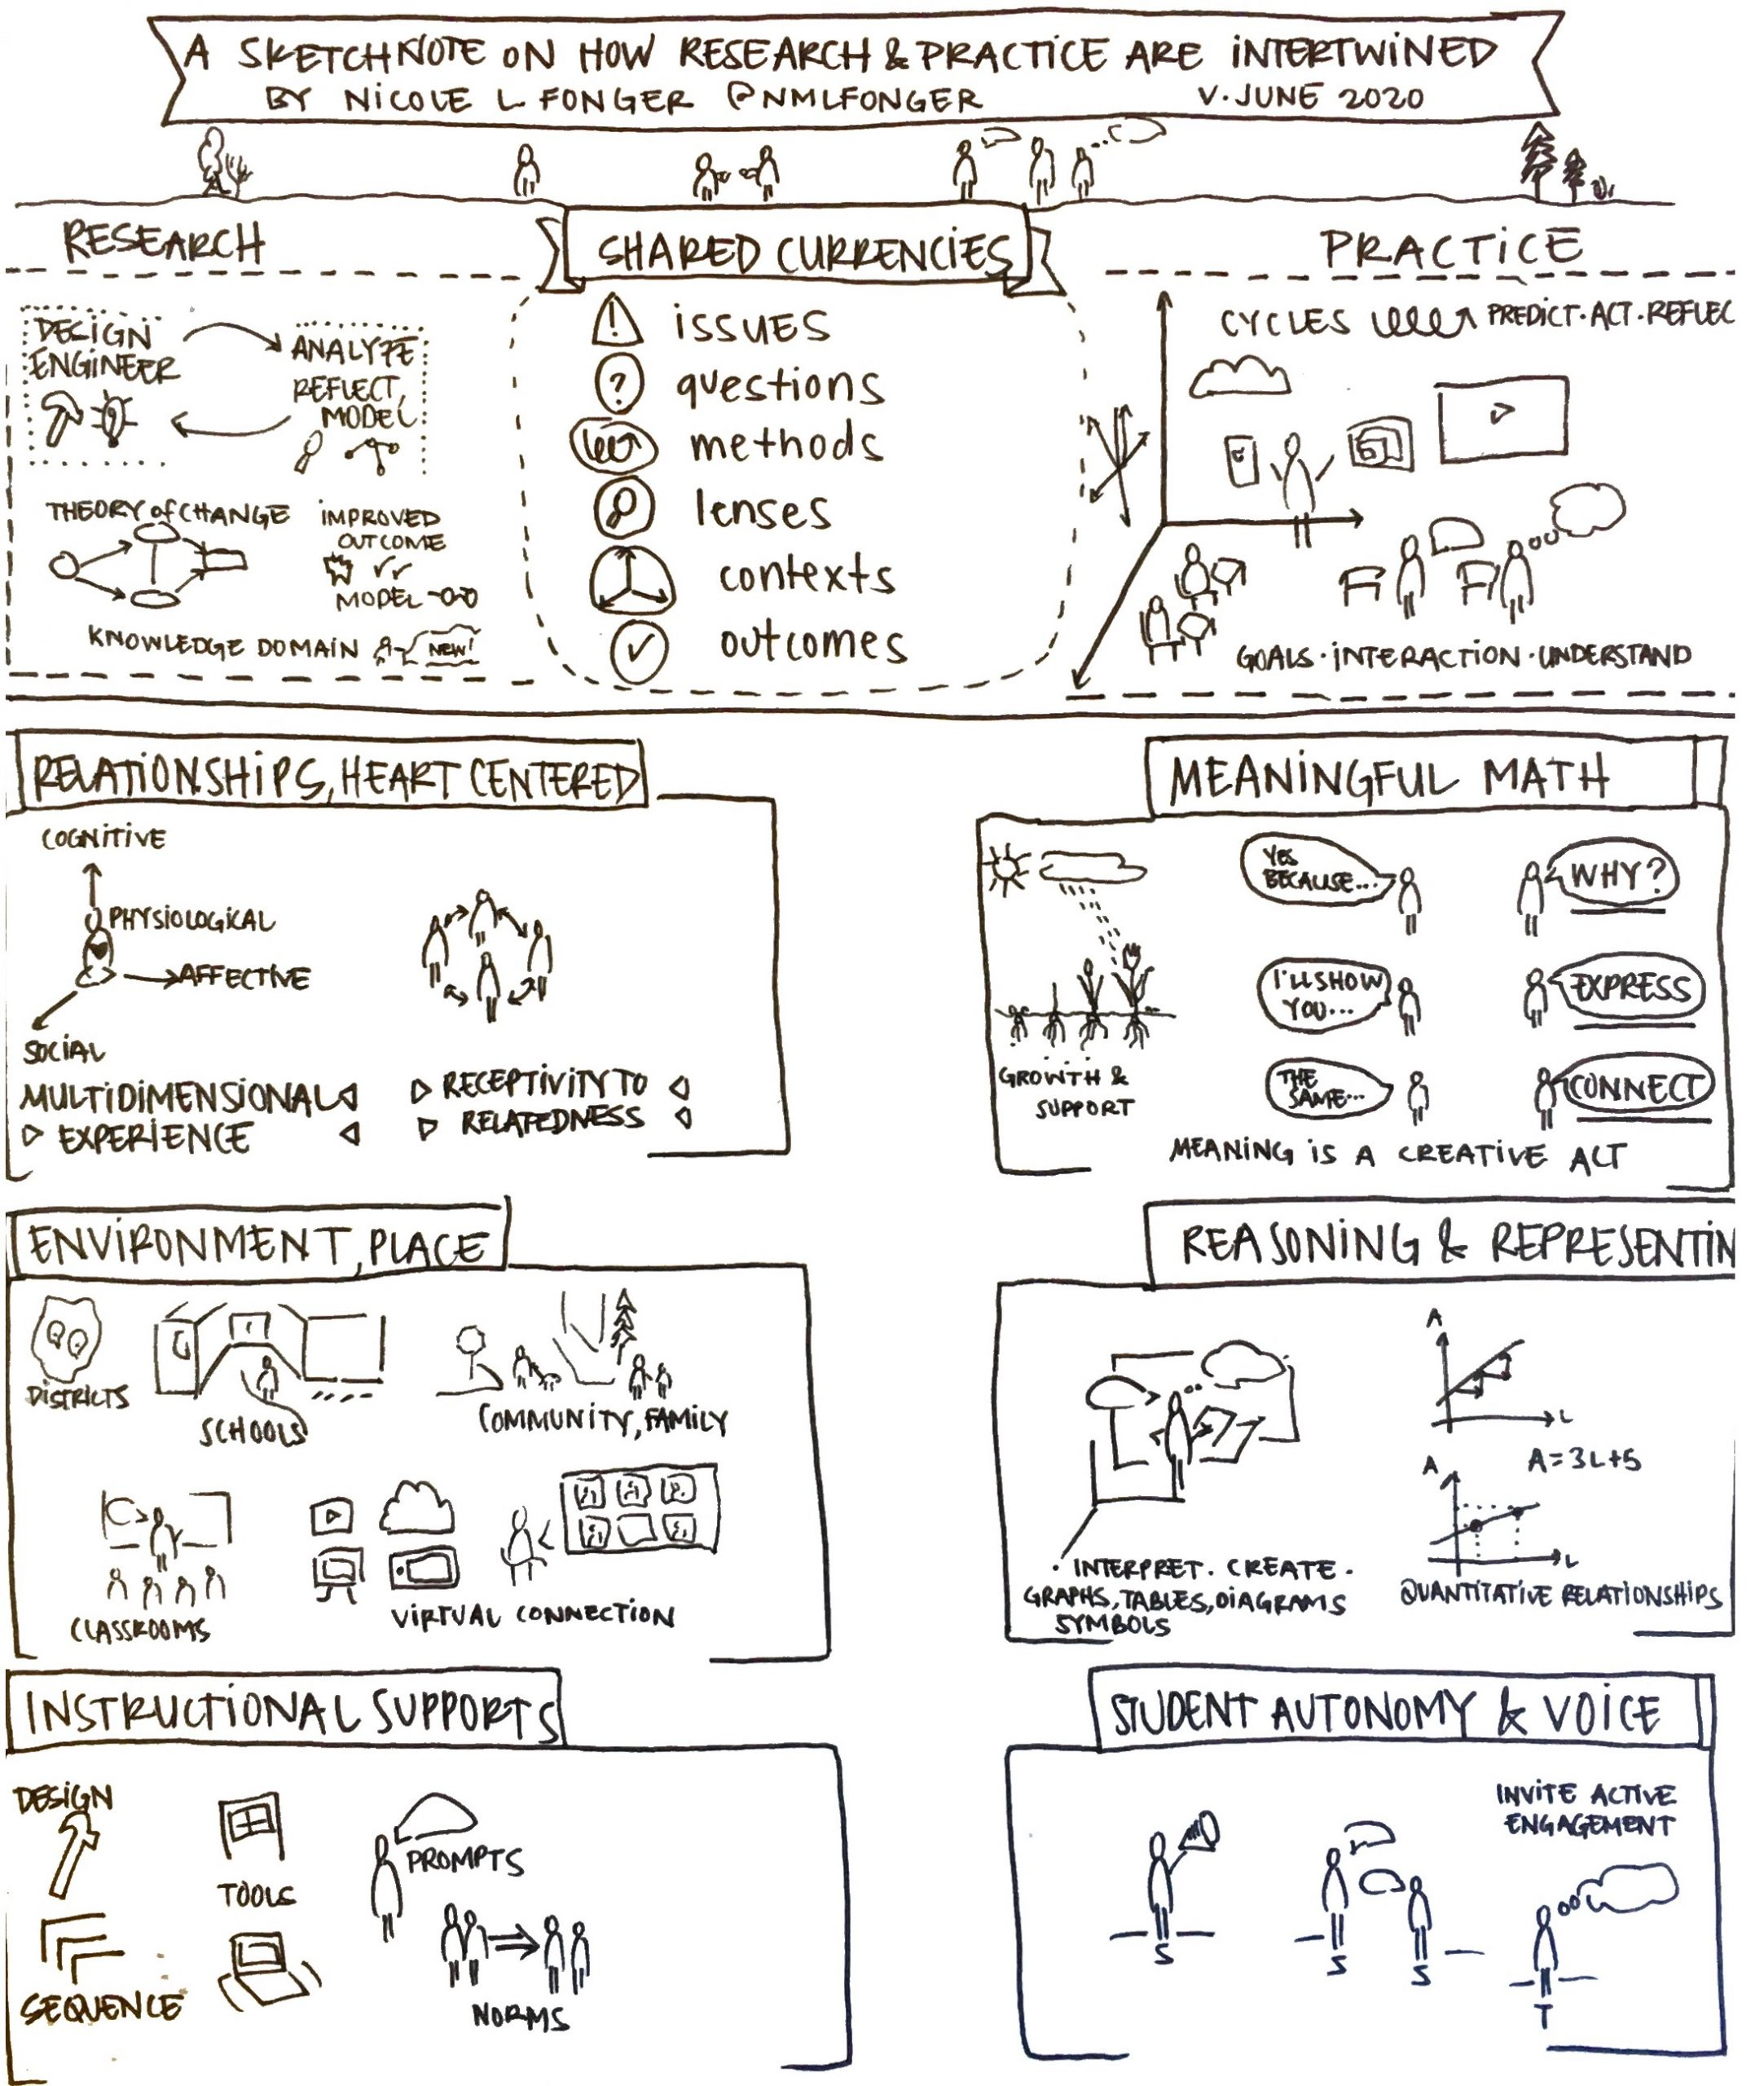 sketchnote by nicole fonger on how research and practice are intertwined